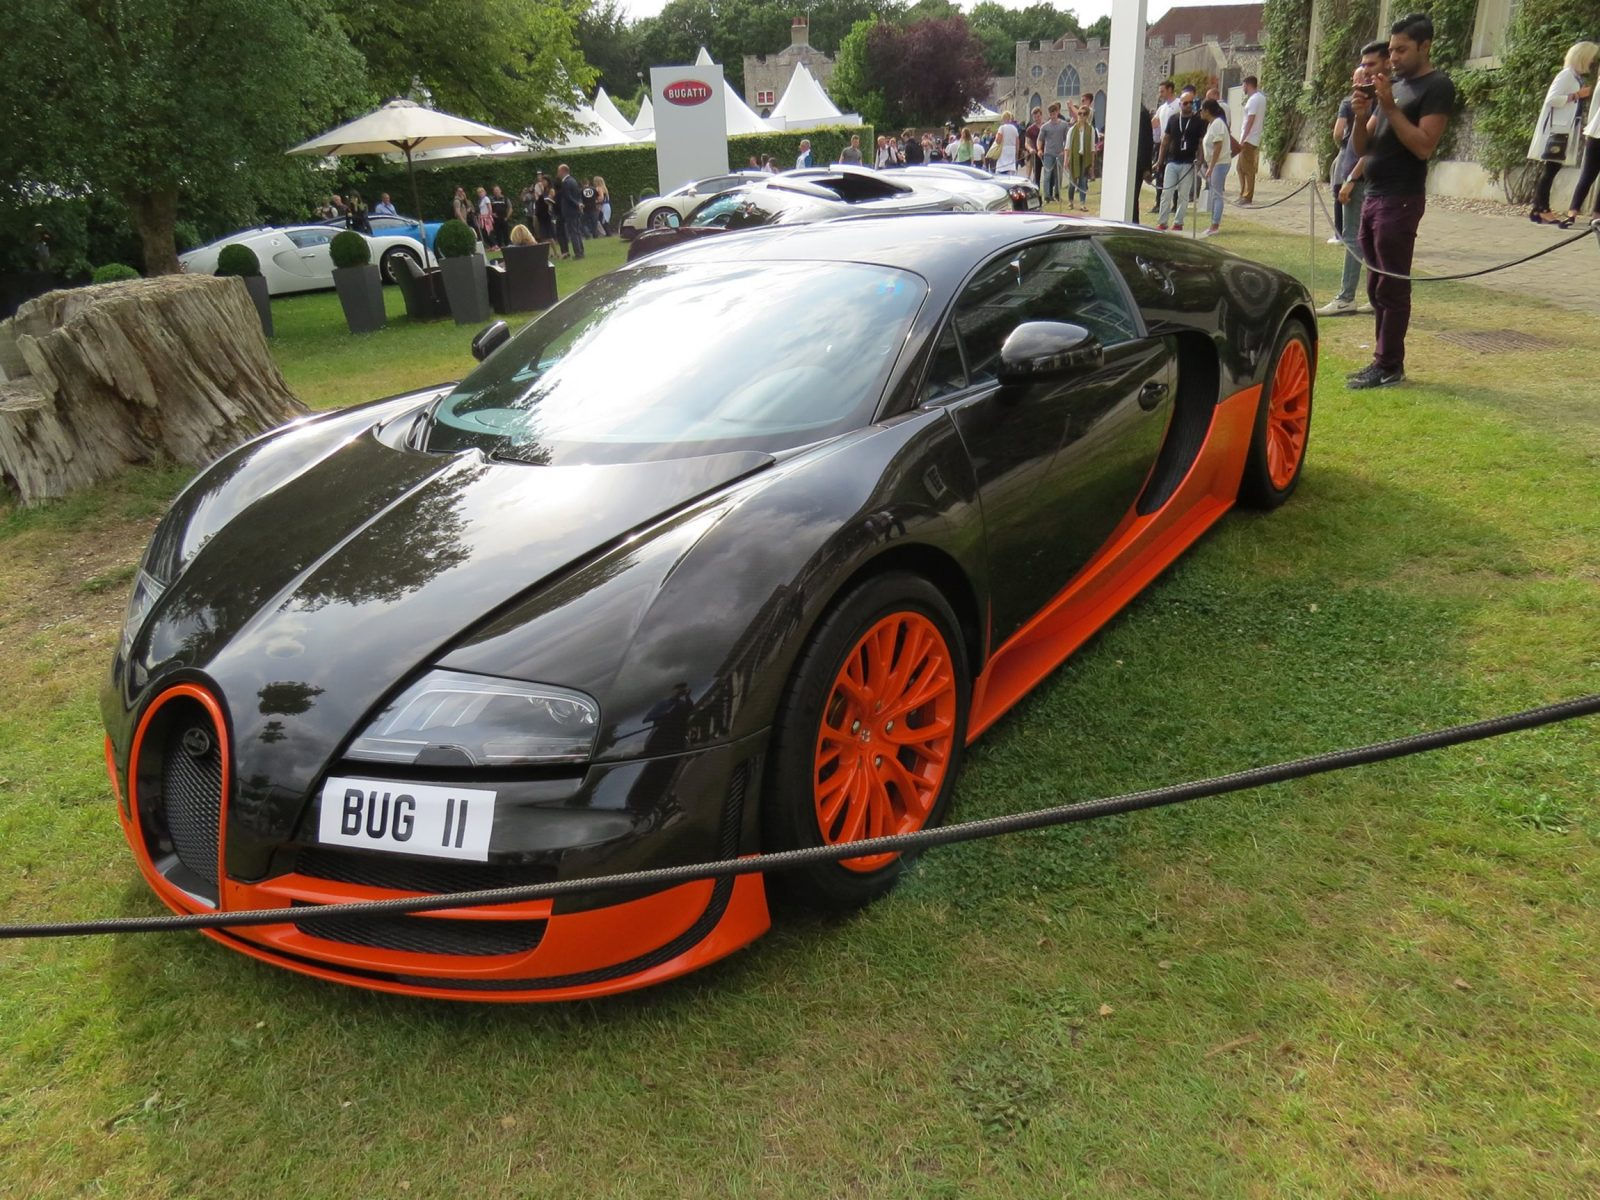 2017 Goodwood Festival of Speed 101